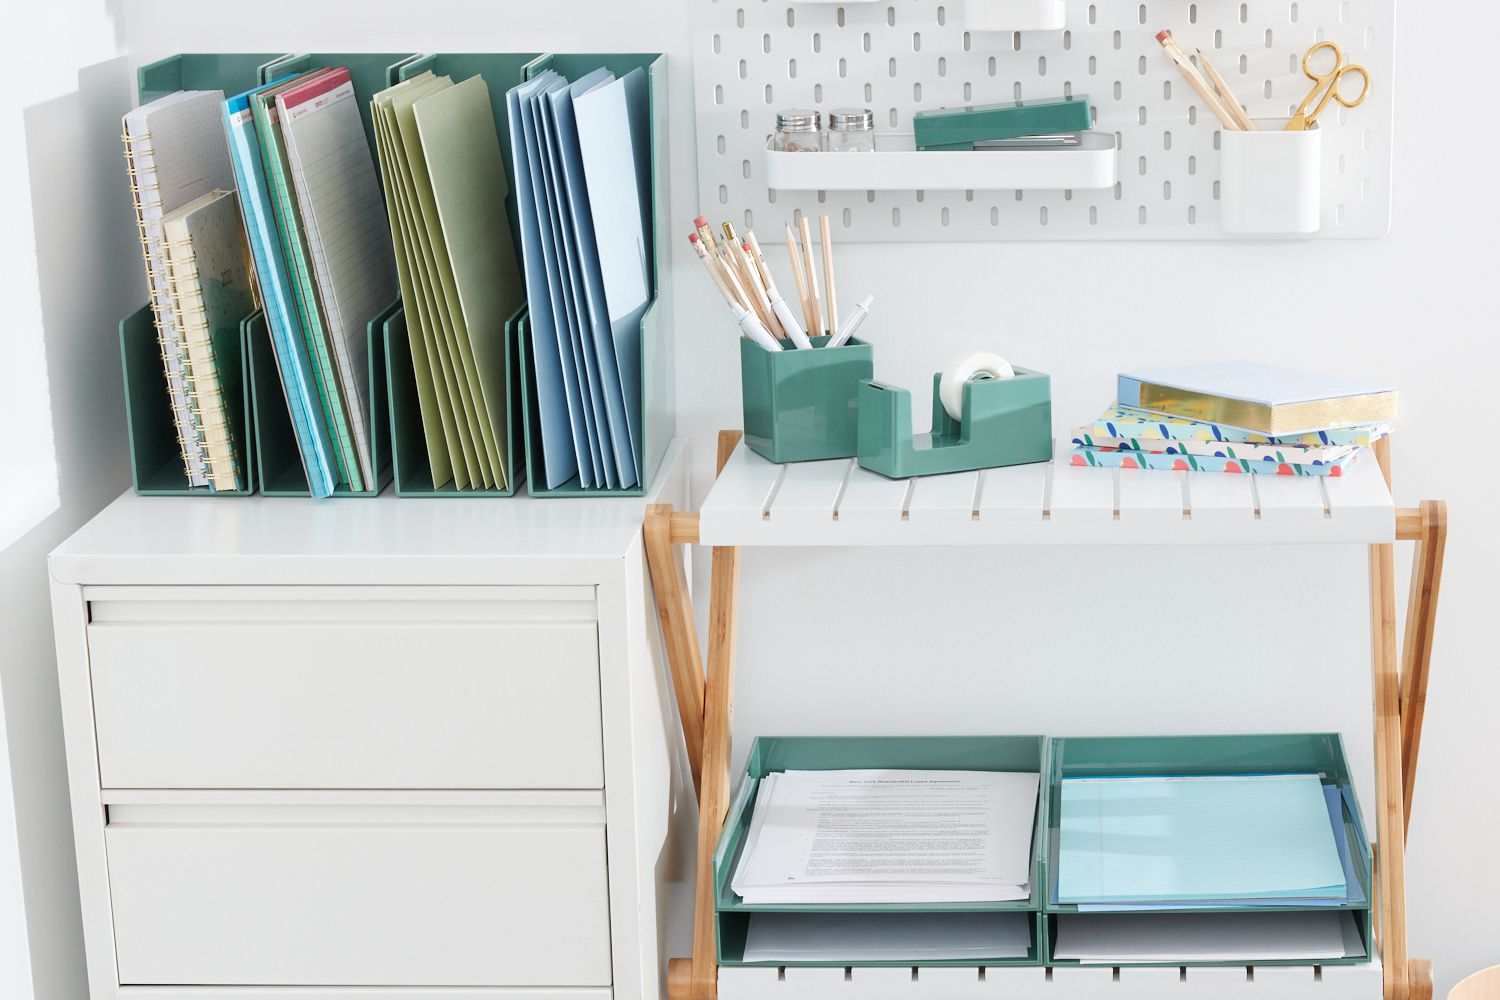 Plastic containers to organize files